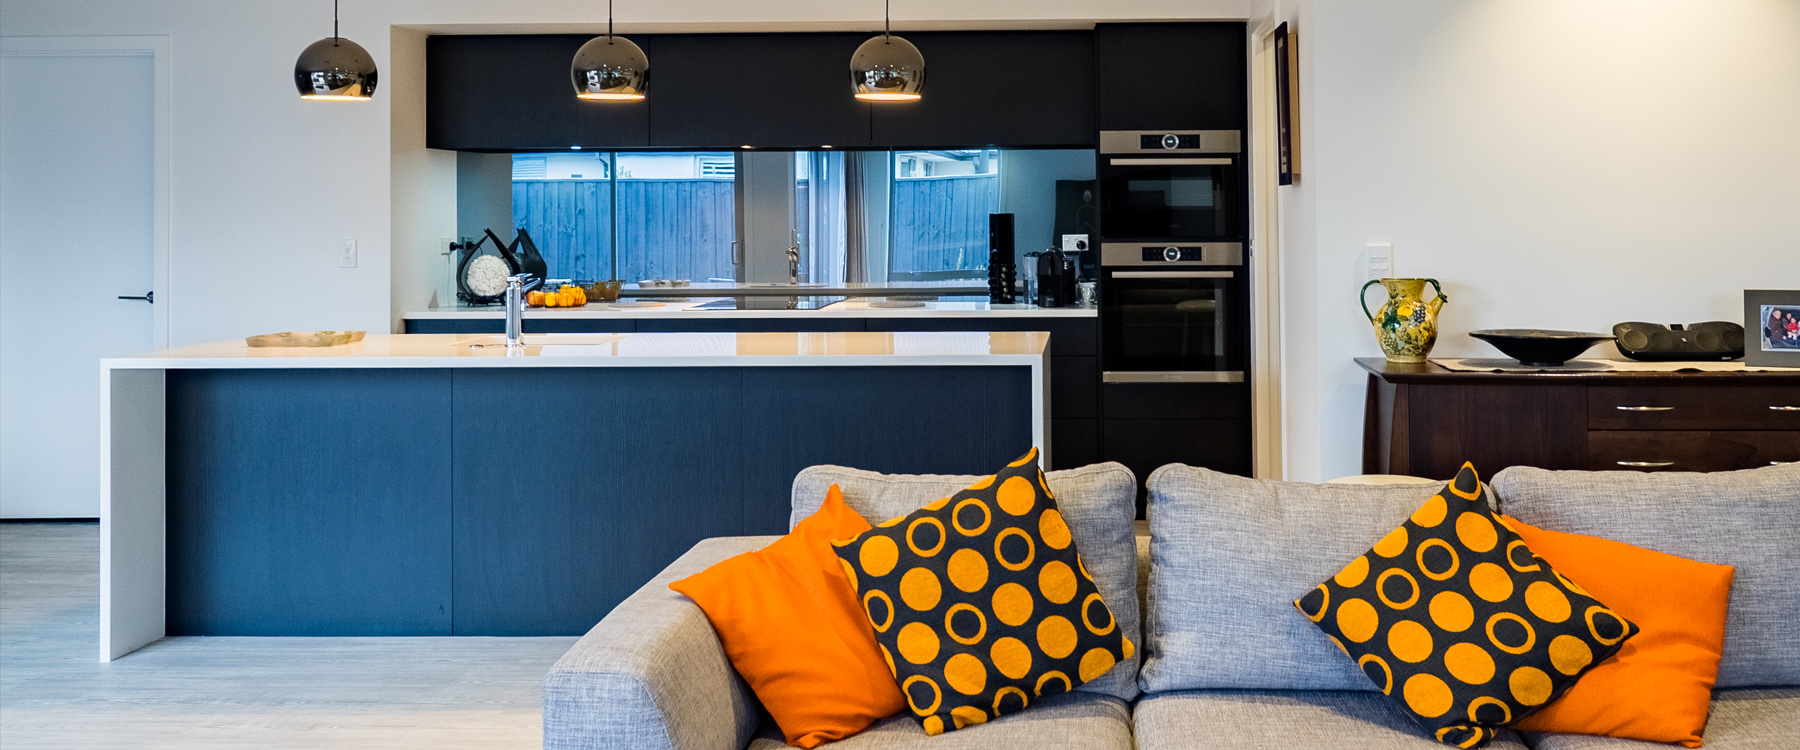 Affordable Kitchen from Prime Kitchens NZ